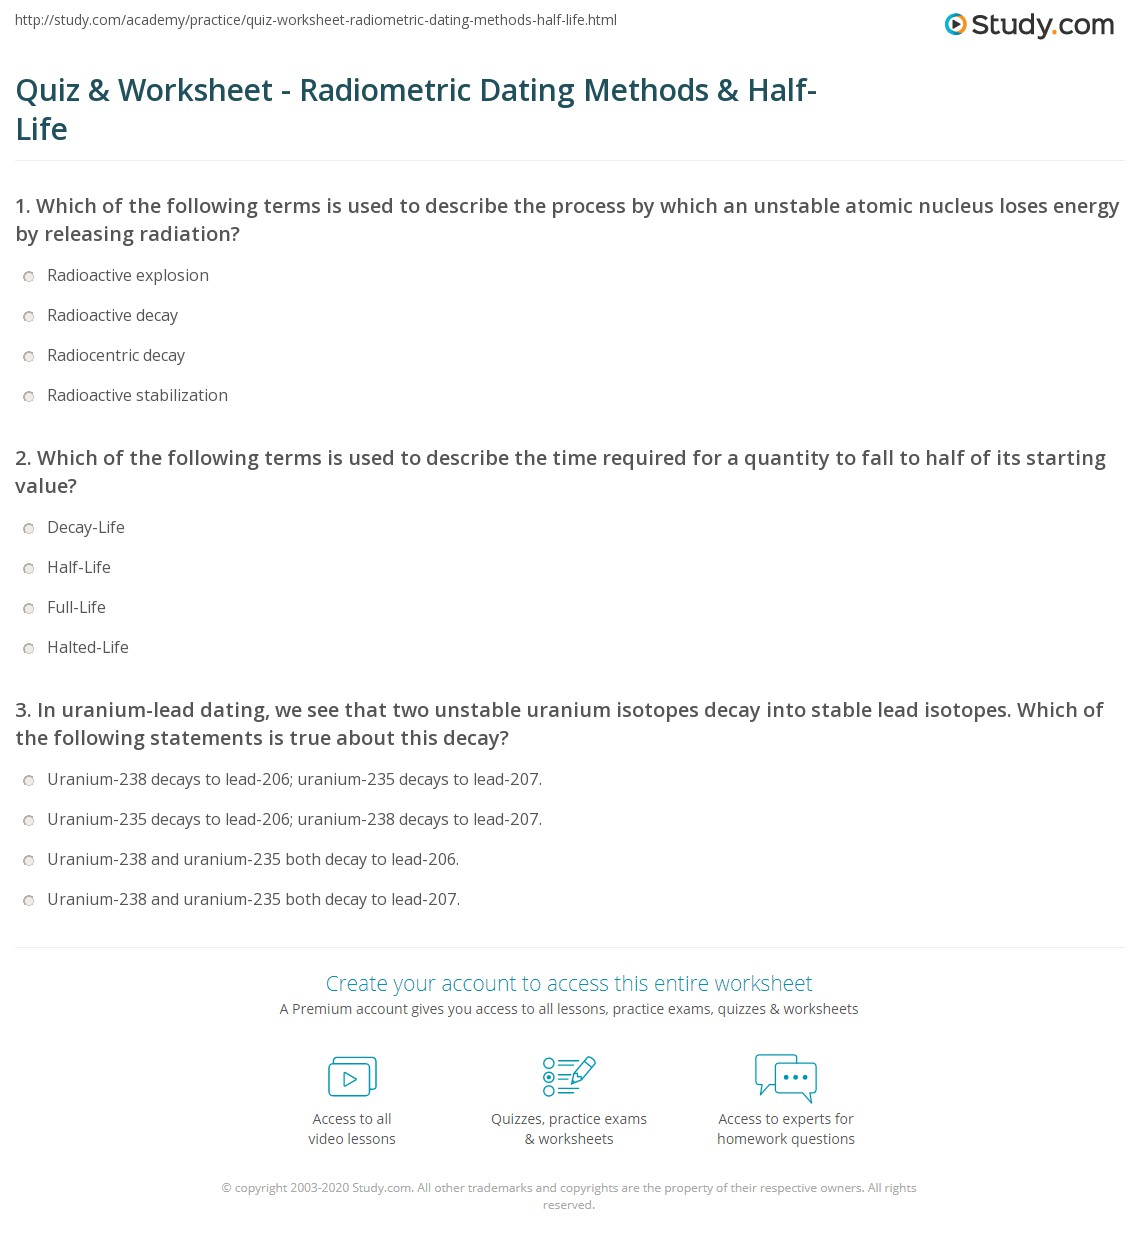 Quiz Worksheet Radiometric Dating Methods HalfLife – Radioactive Dating Worksheet